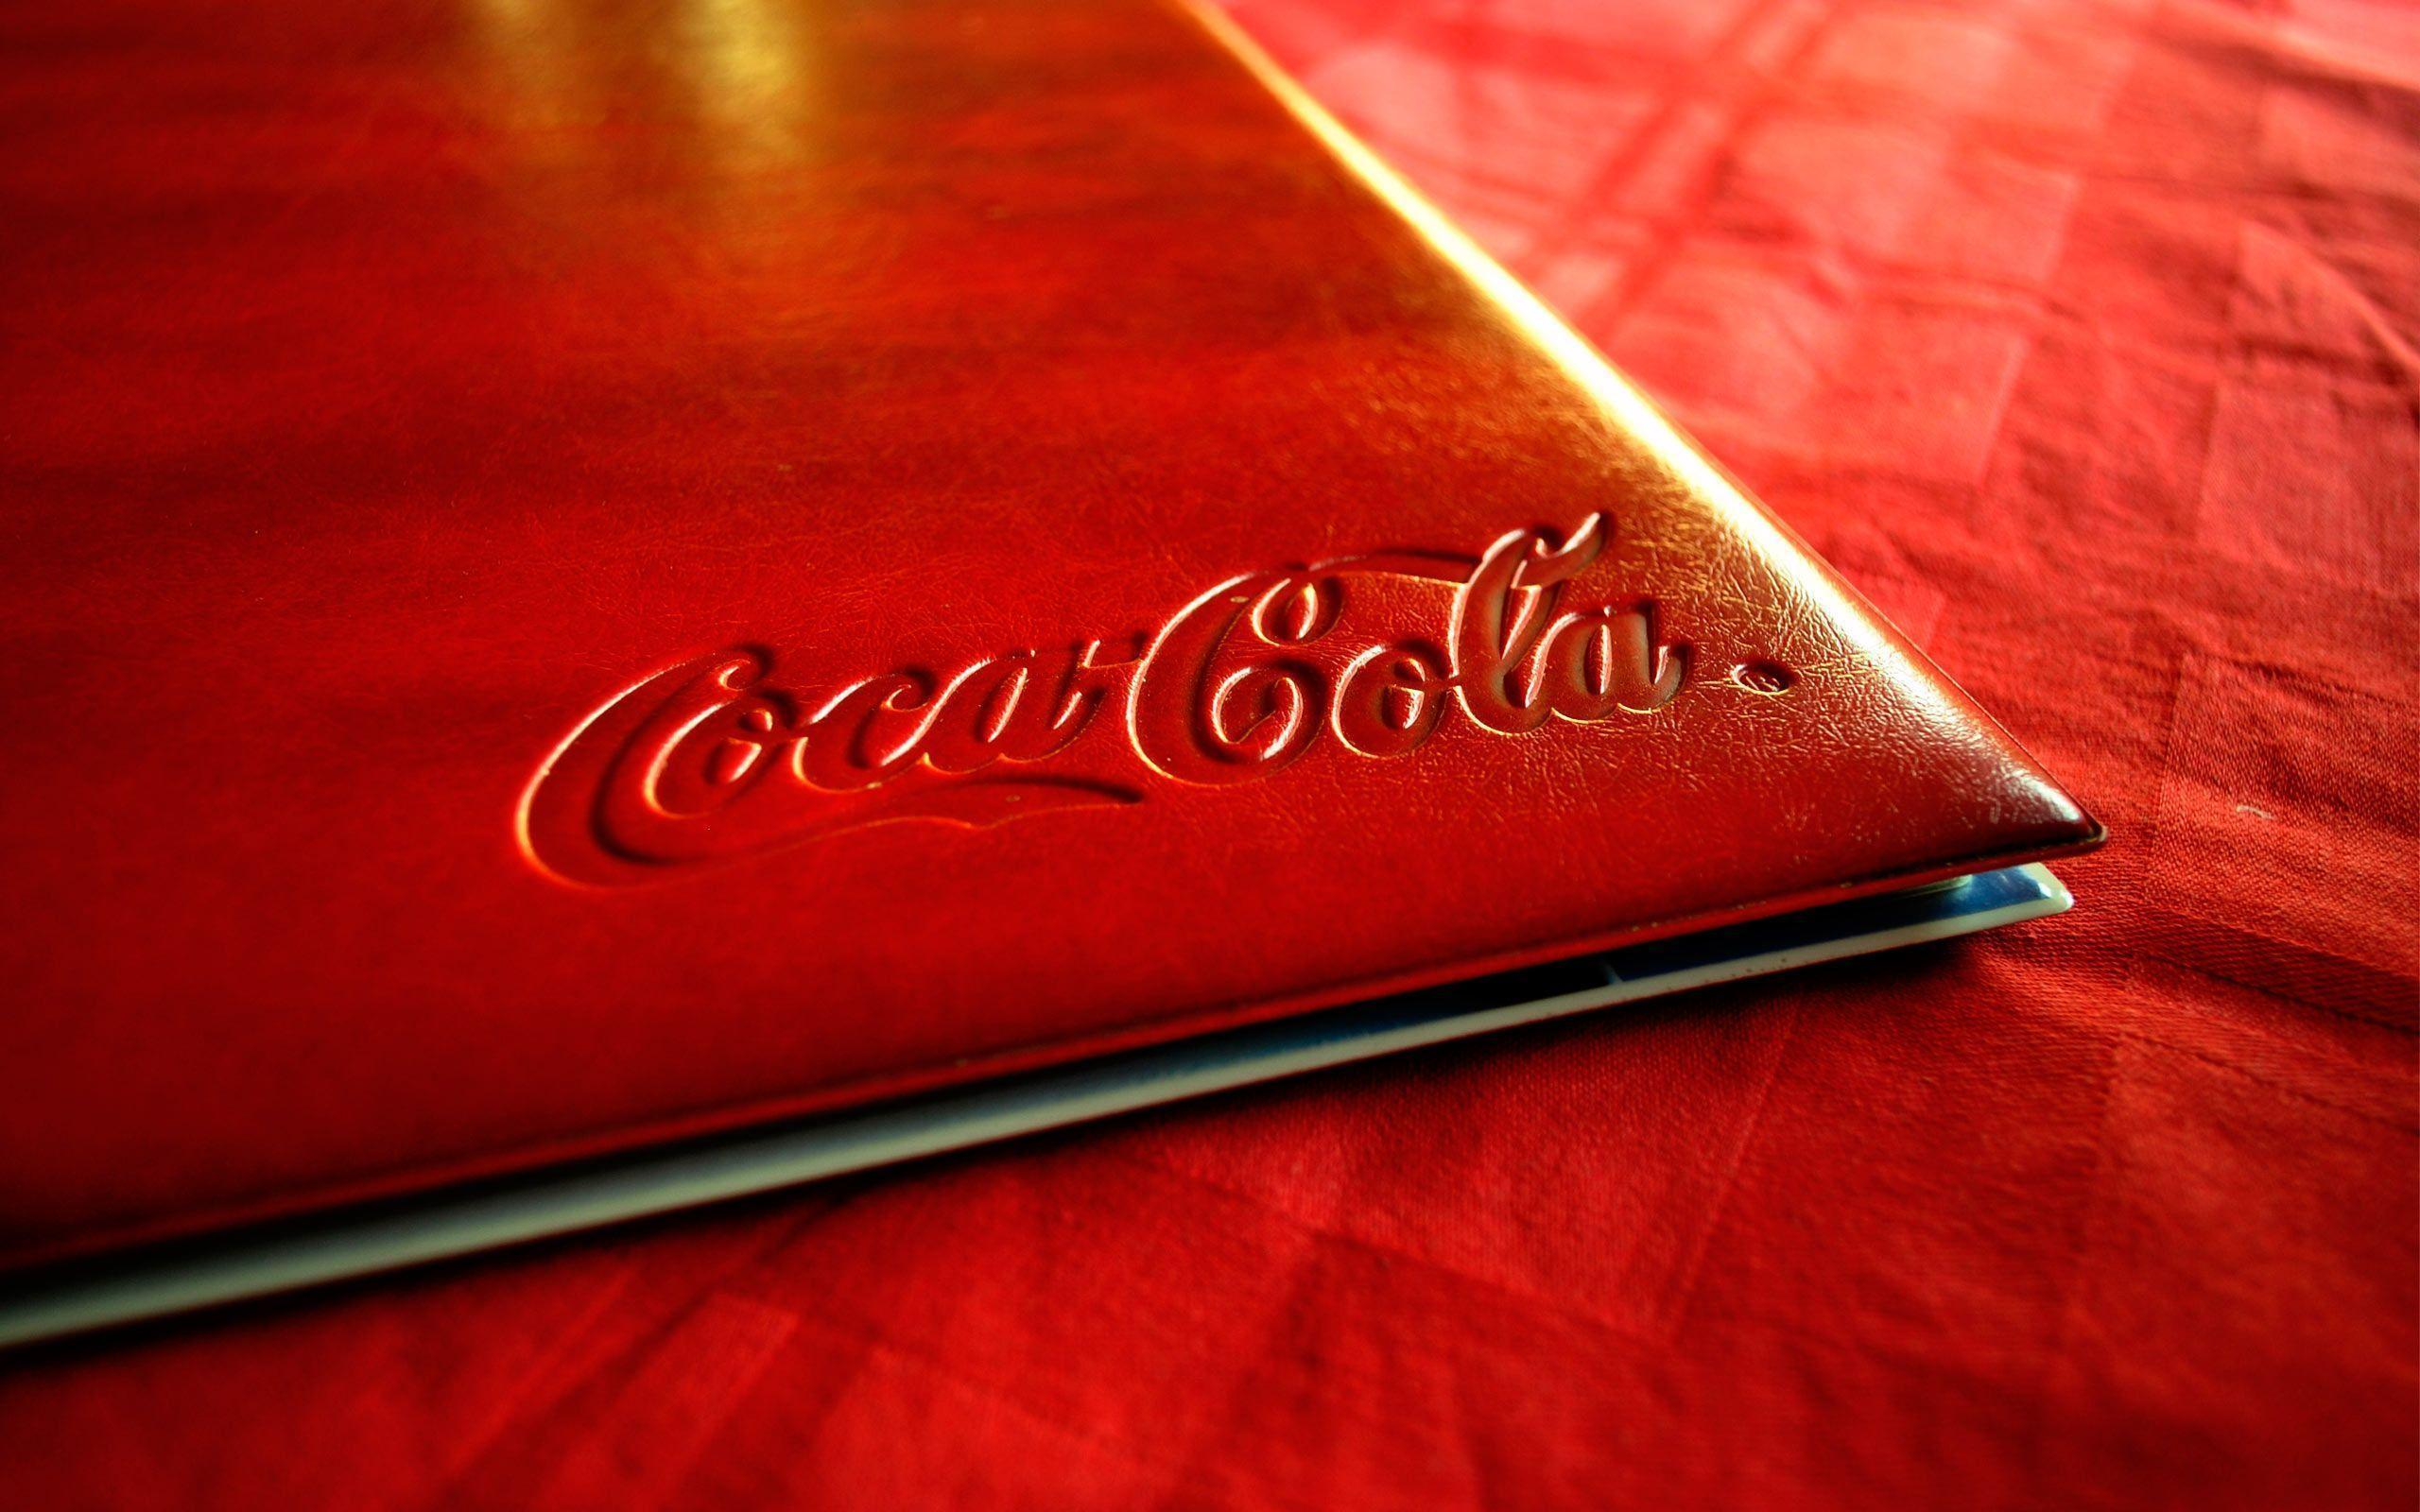 Coca Cola Wallpaper 25 20250 Images HD Wallpapers| Wallpapers ...